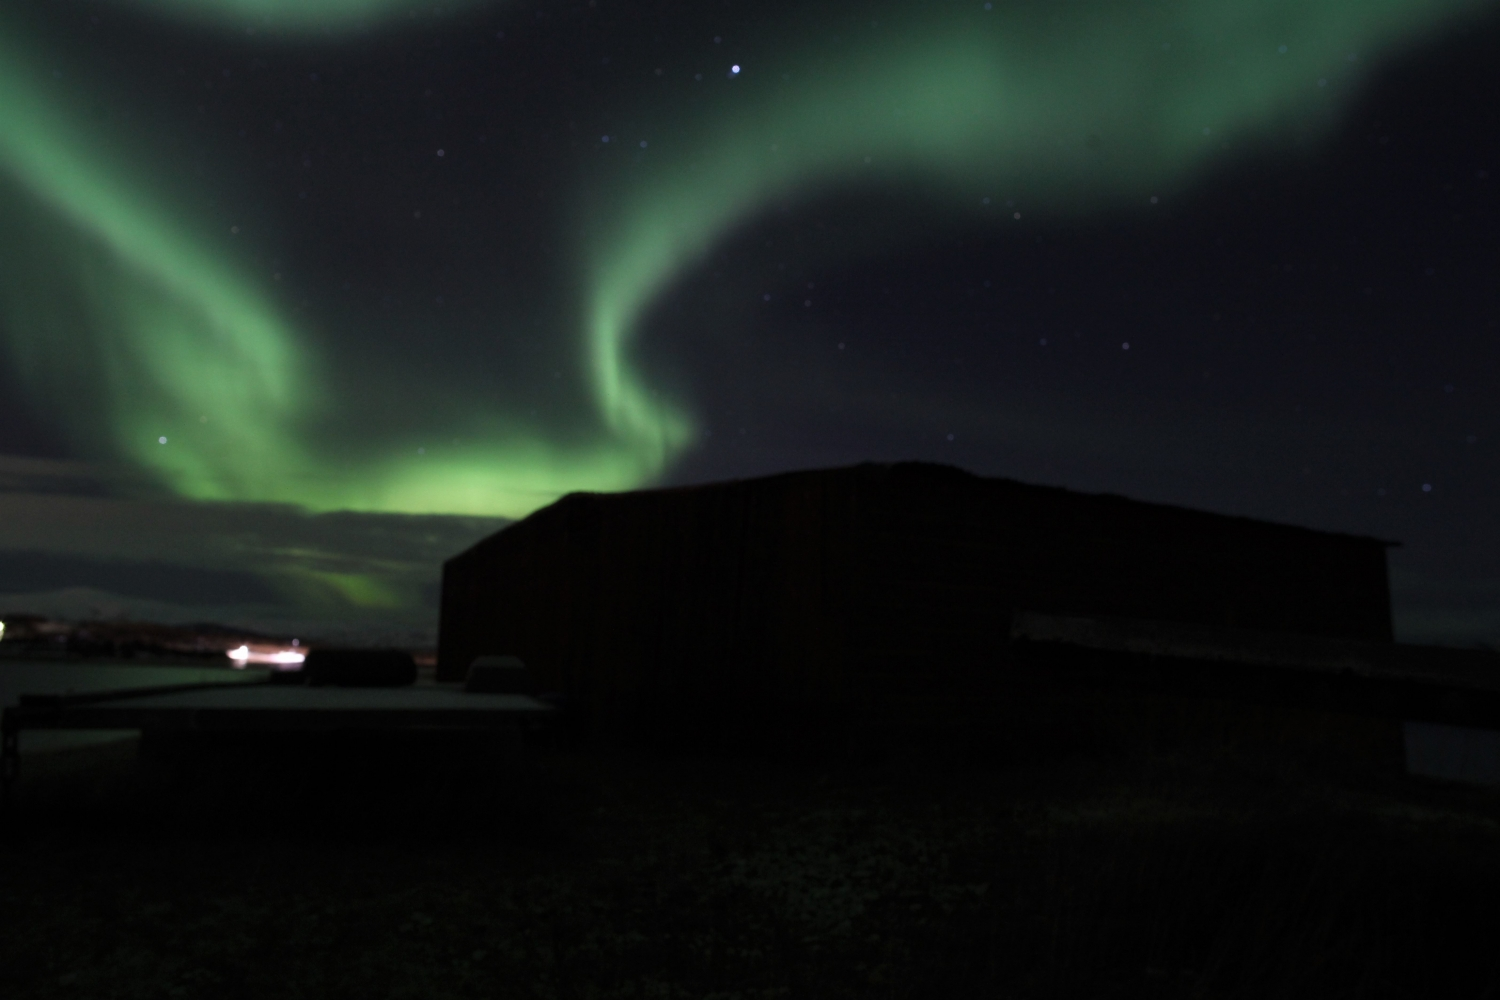 Northern Lights over dark landscape